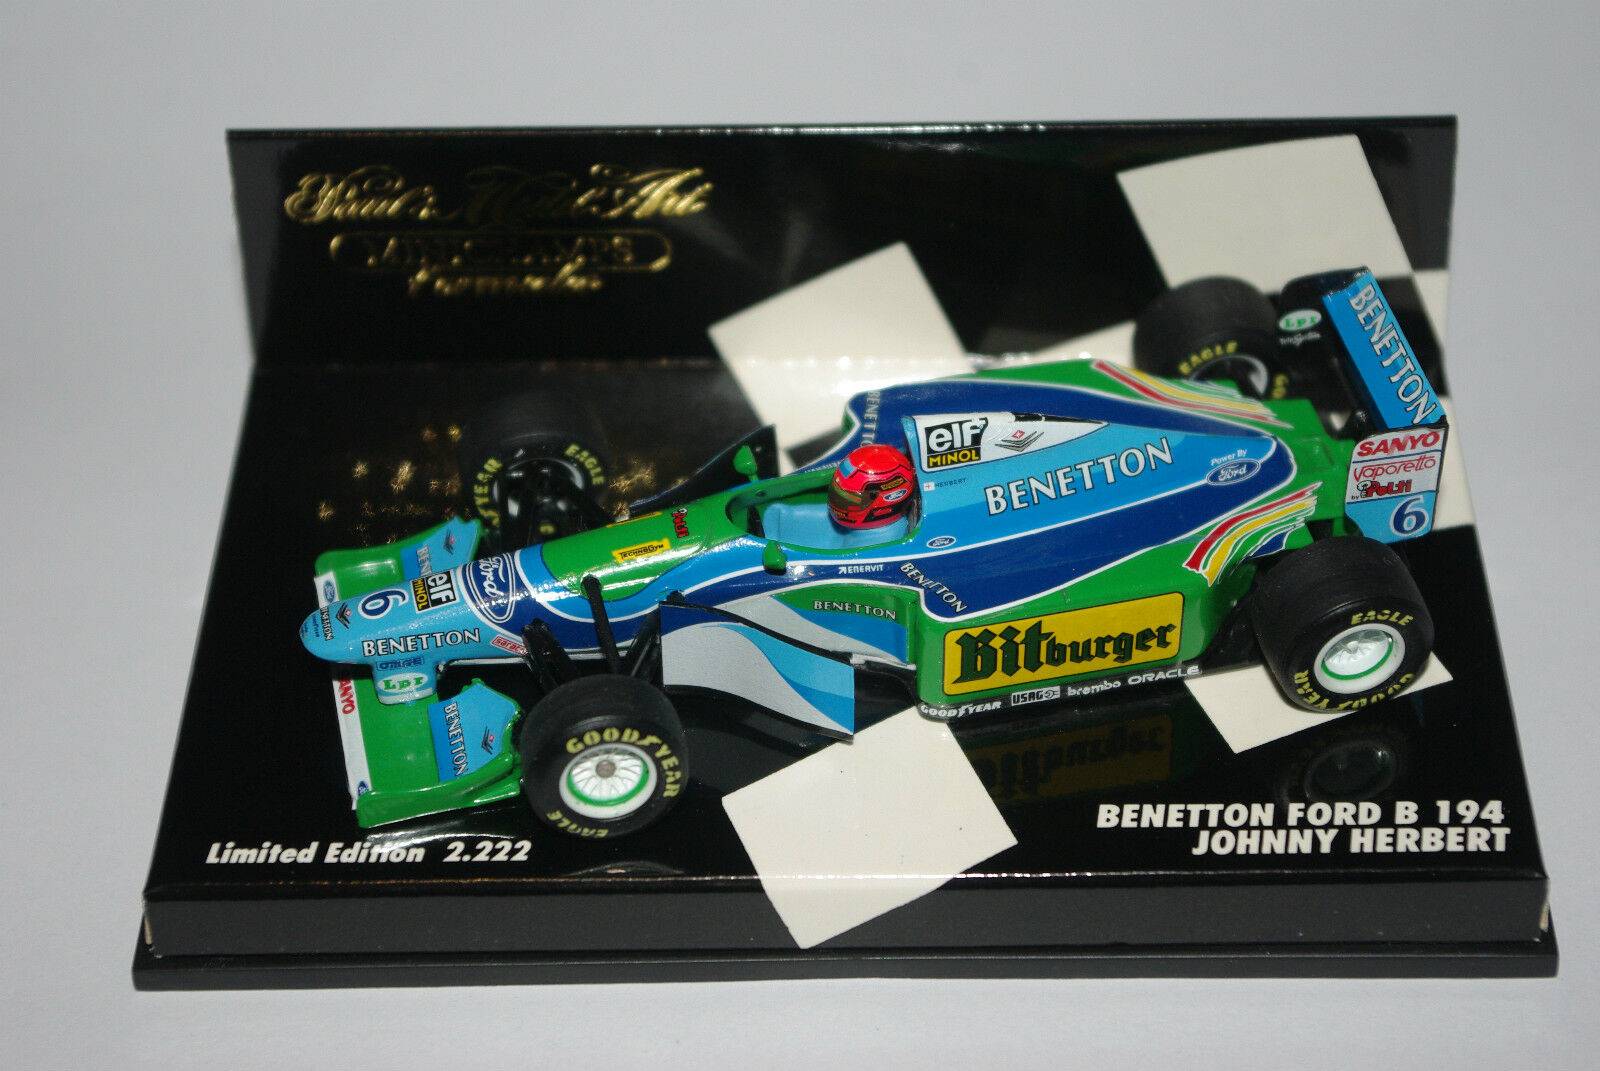 Minichamps F1 1 43 BENETTON FORD B194 JOHNNY HERBERT 2222pcs